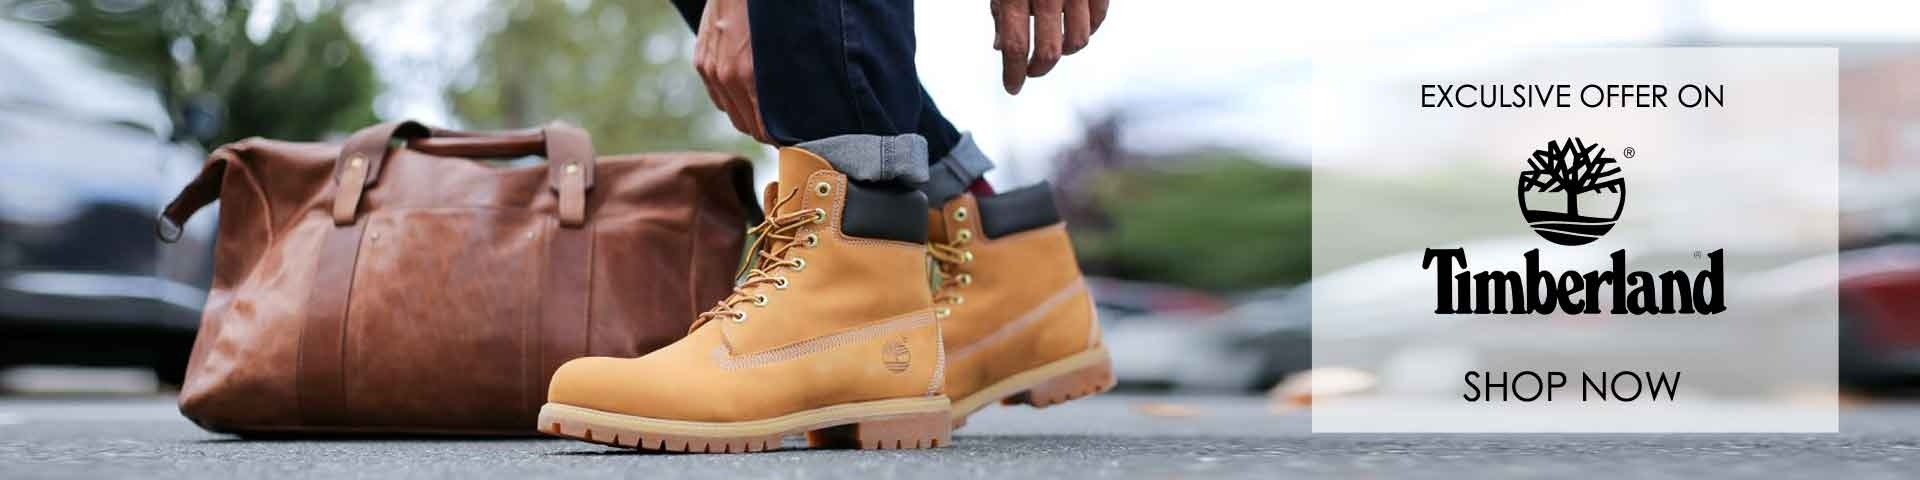 timberland leather boots on sale online free shipping Australia